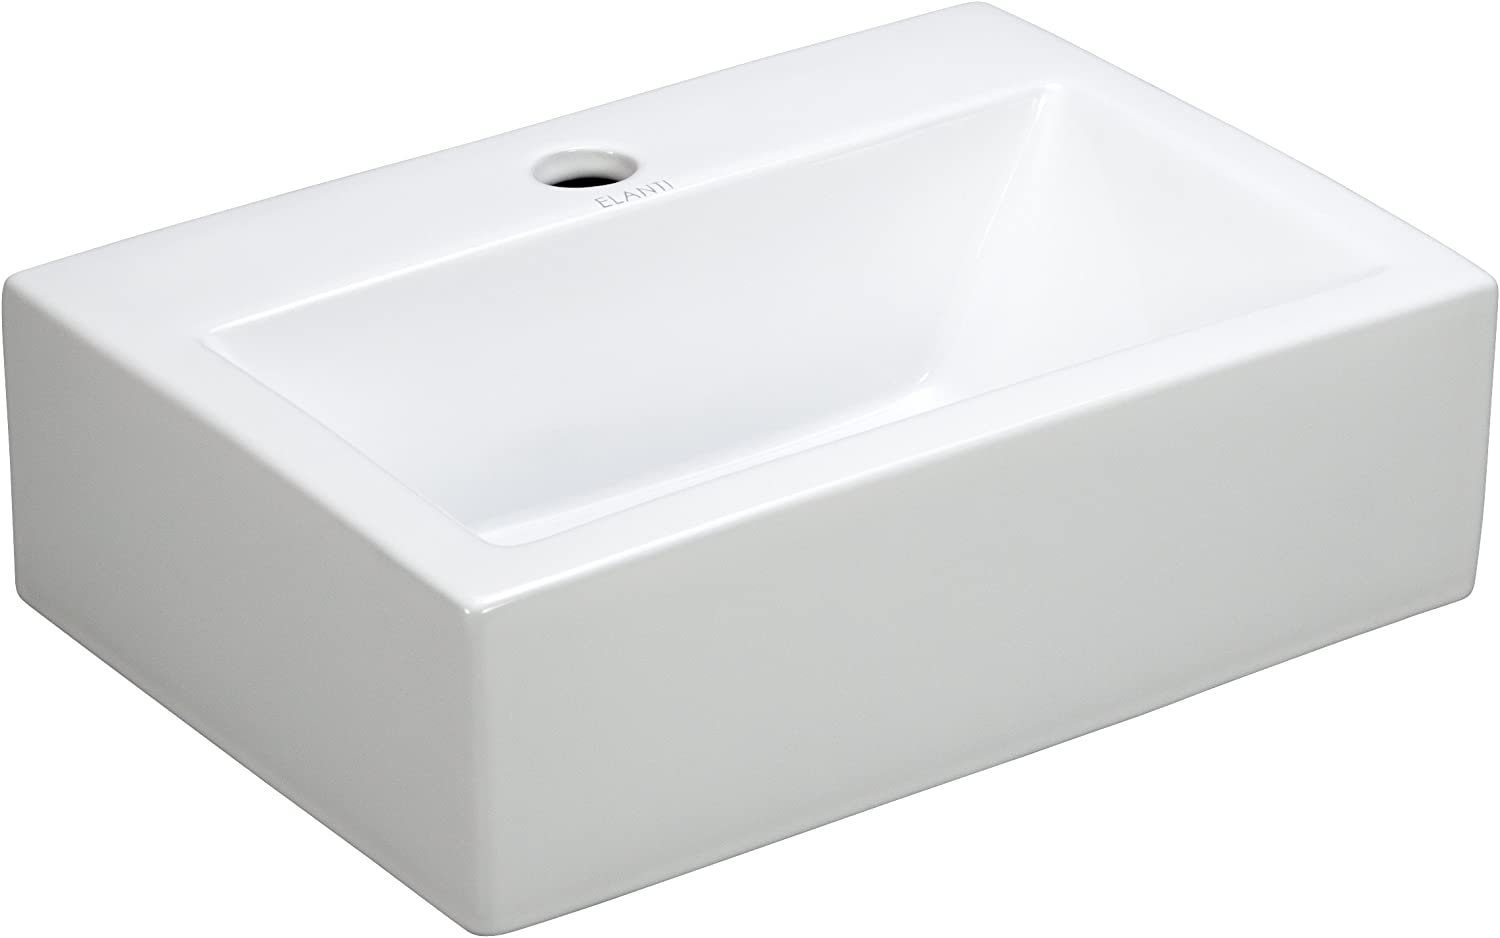 Elite Sinks Ec9859 Porcelain Wall-Mounted Rectangle Sink, White